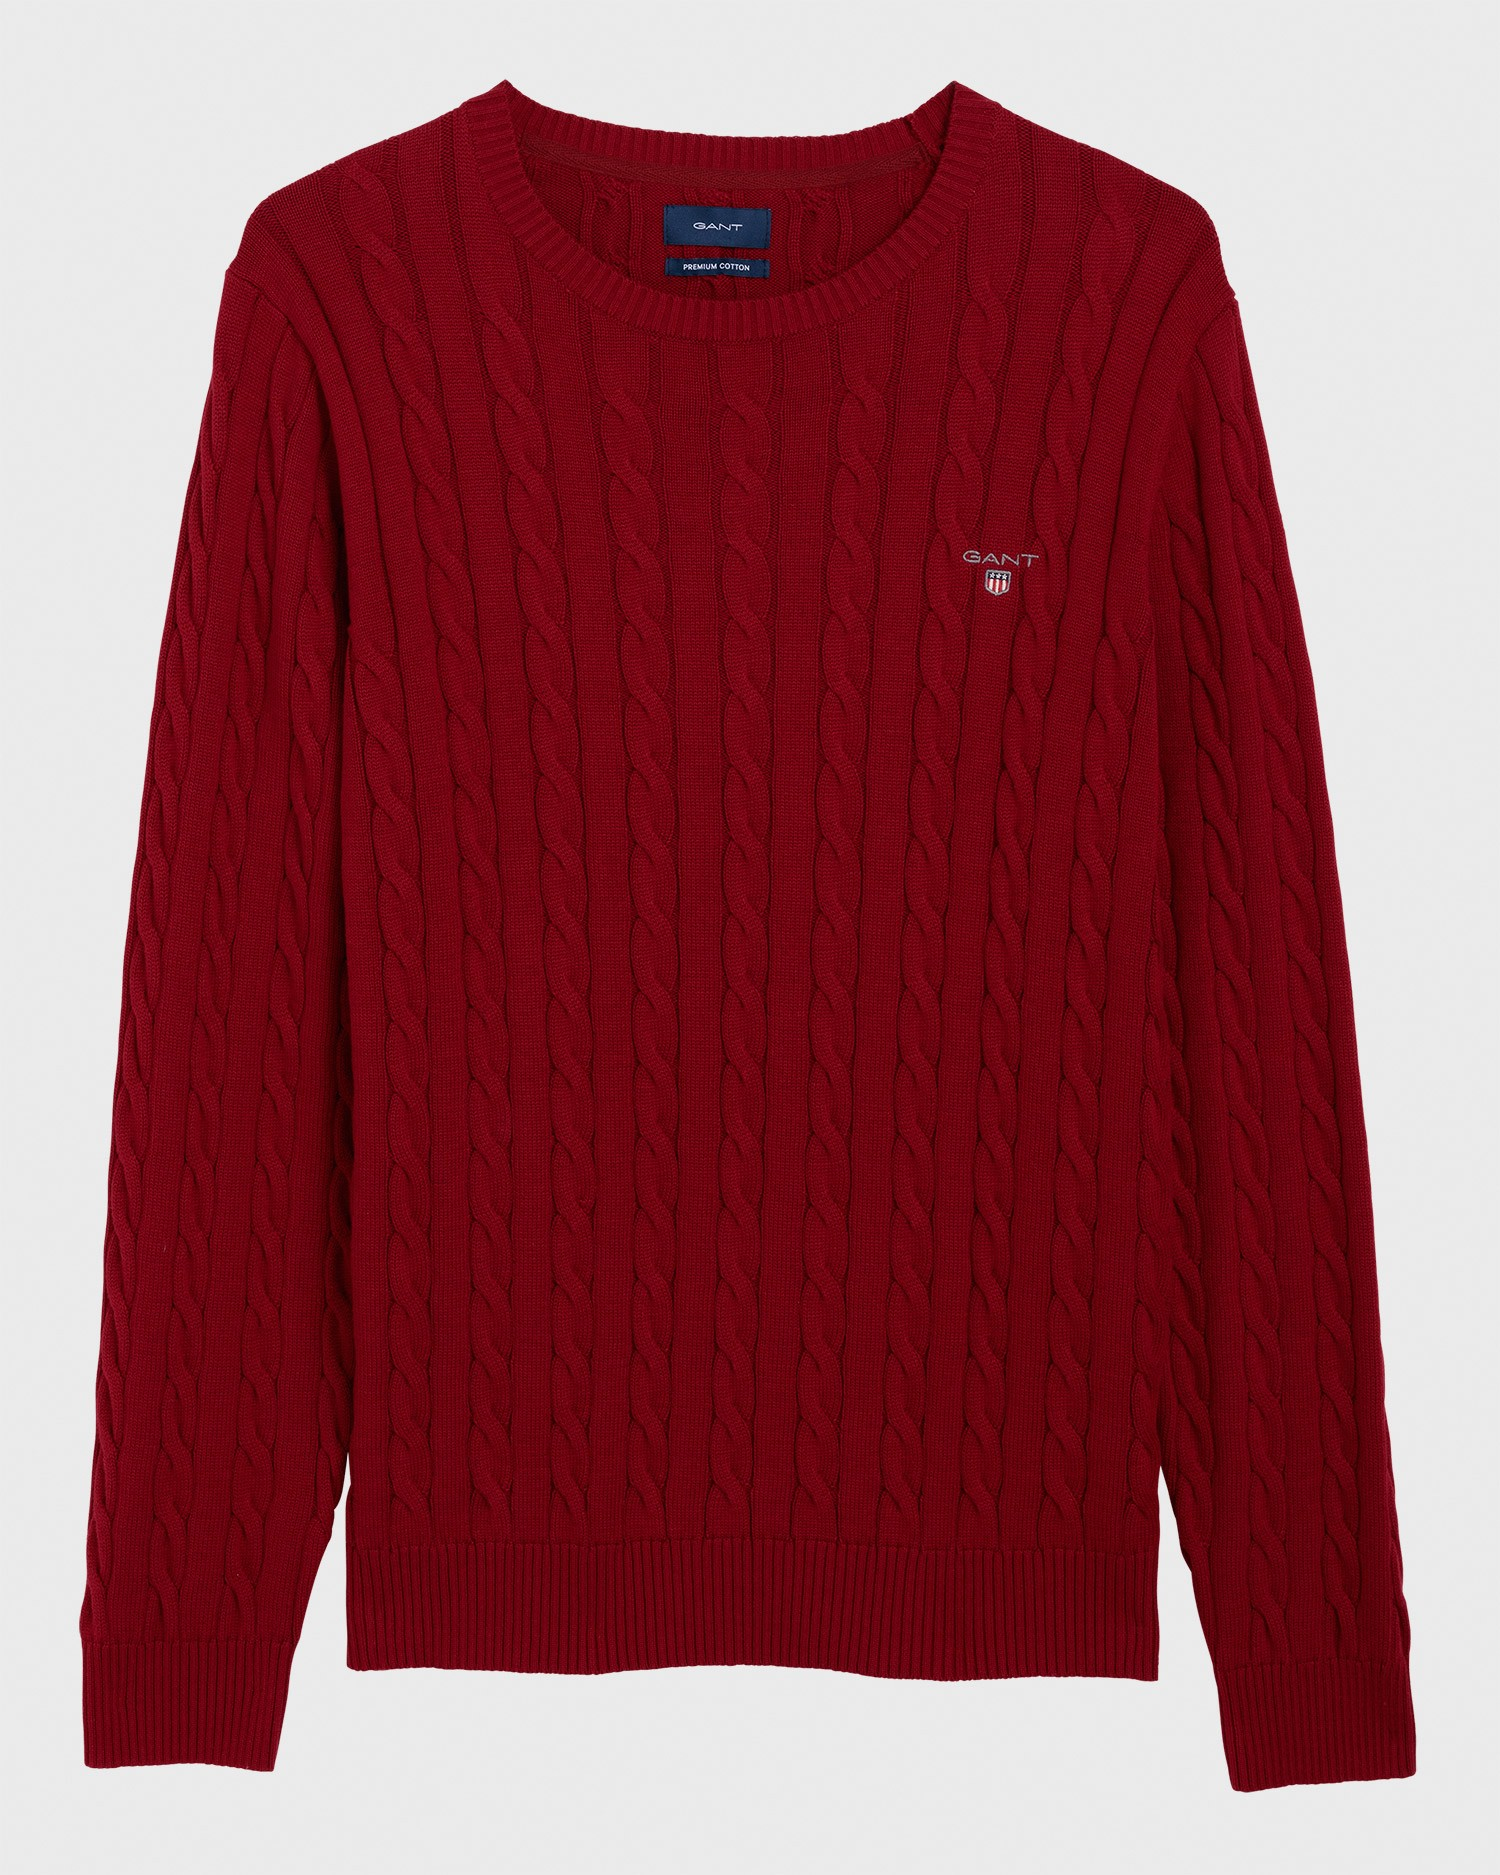 GANT Men's Sweater - 8050501